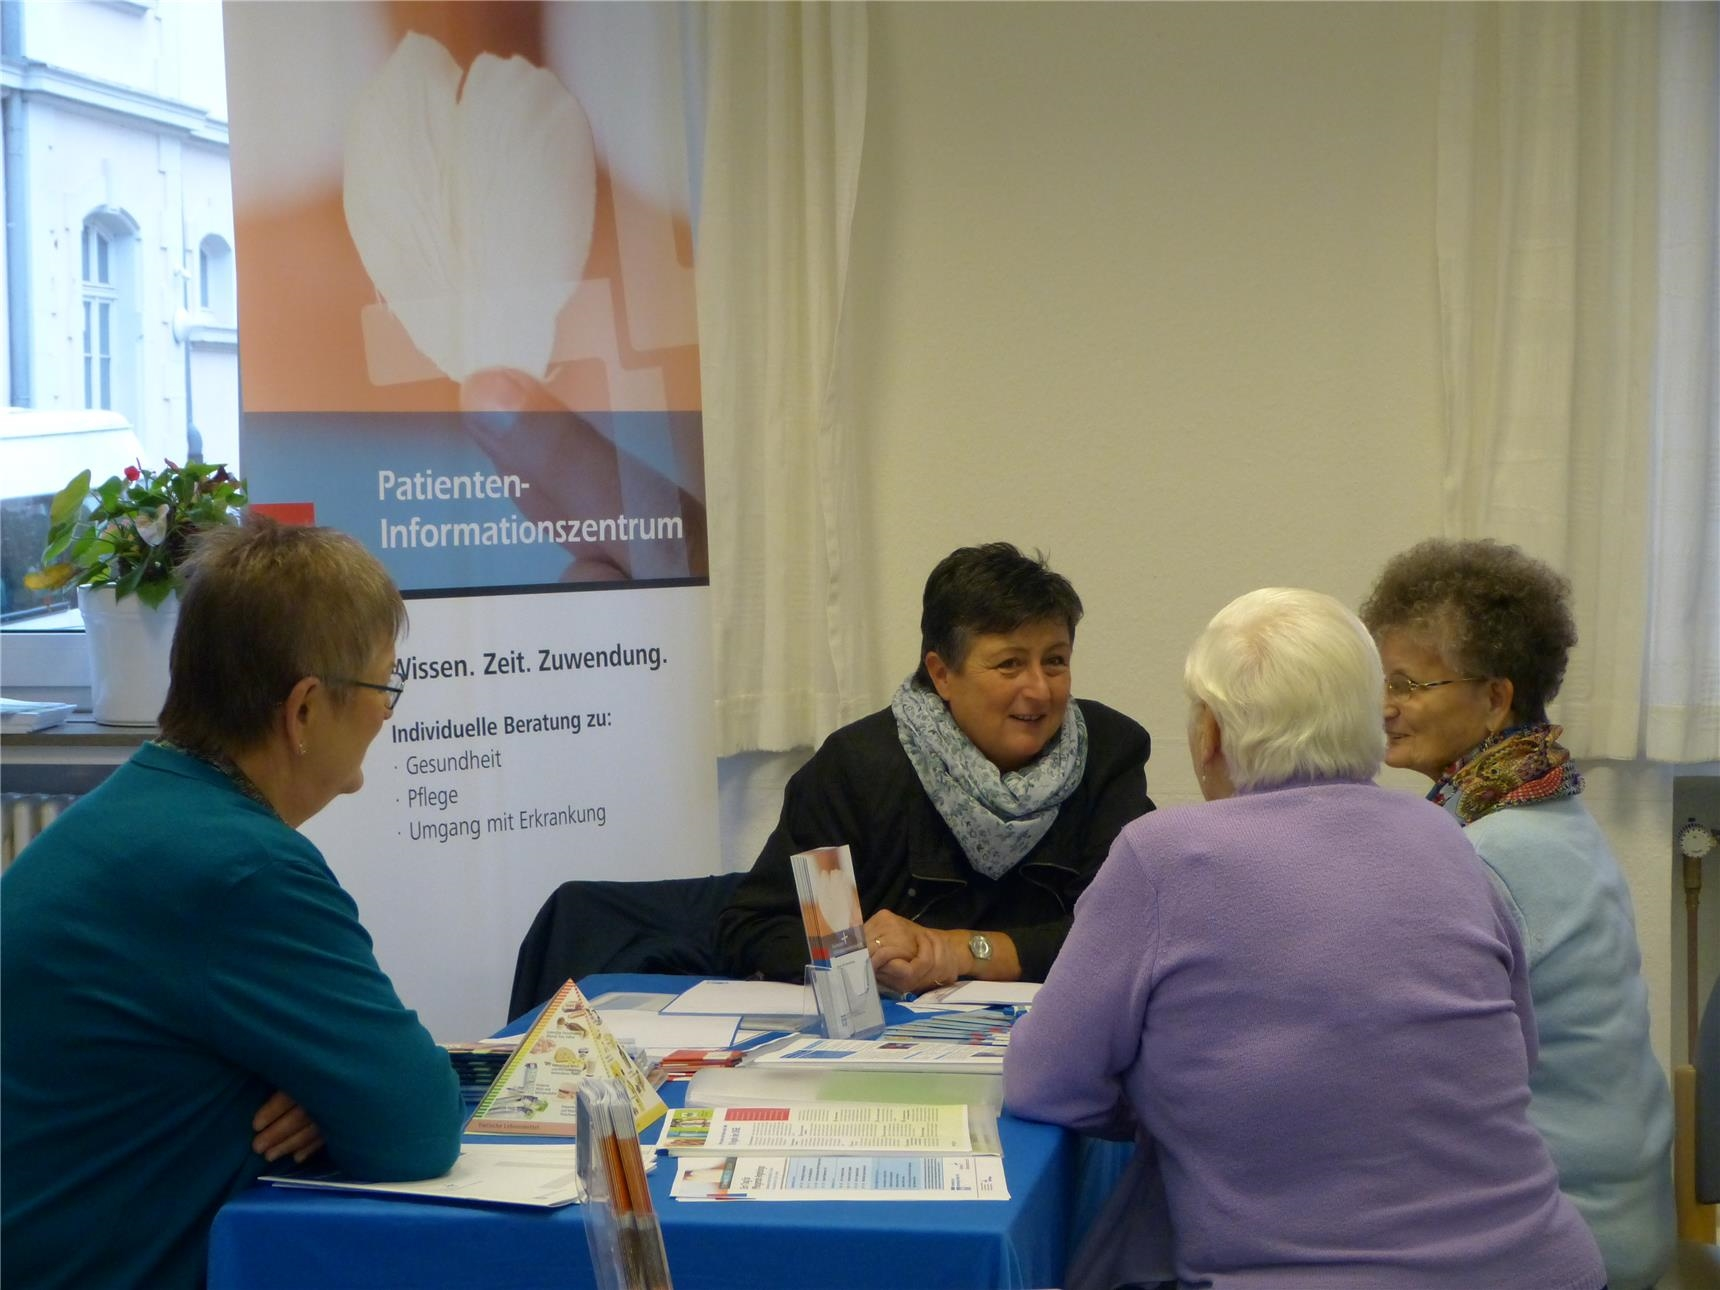 "vier Frauen an einem Tisch, im Hintergrund ein Banner mit der Aufschrift ""Patienten-Informationszentrum"". (Quartiersmanagement Trier-West/Caritasverband Trier e. V.)"